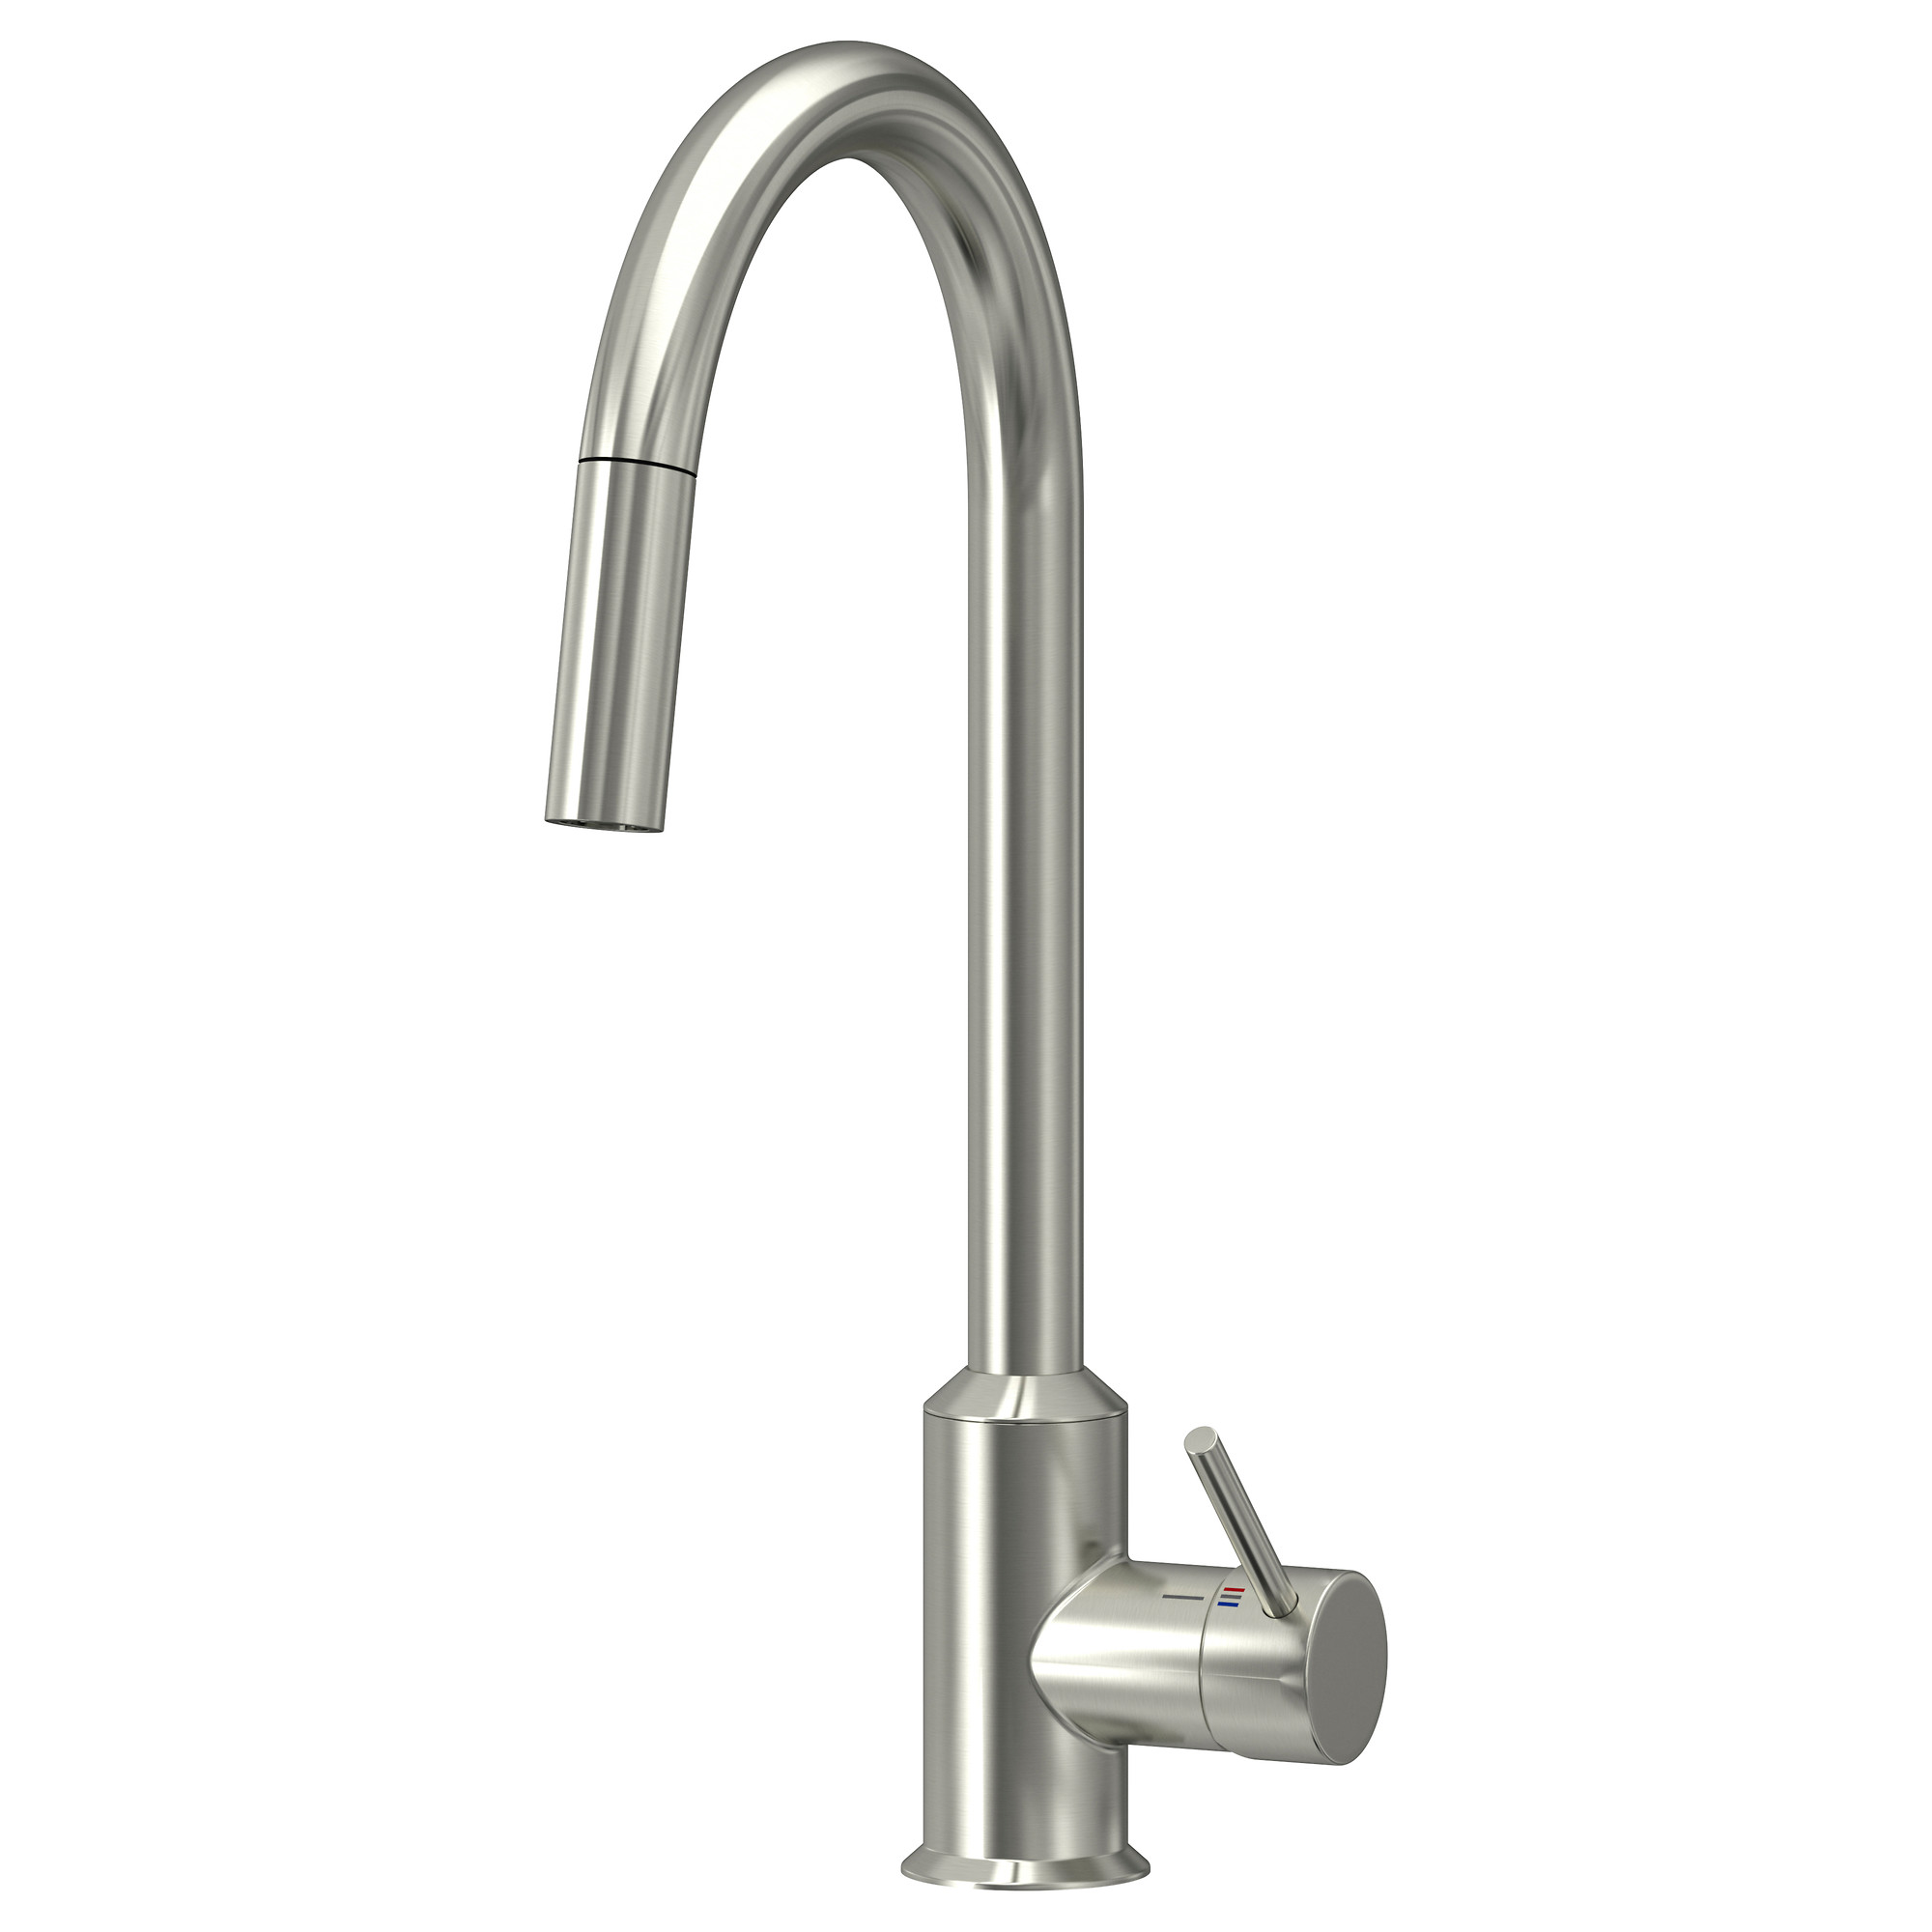 Atrio Bathroom Faucets GROHE grohe.us en_us bathroom bathroom faucet collection atrio one.html